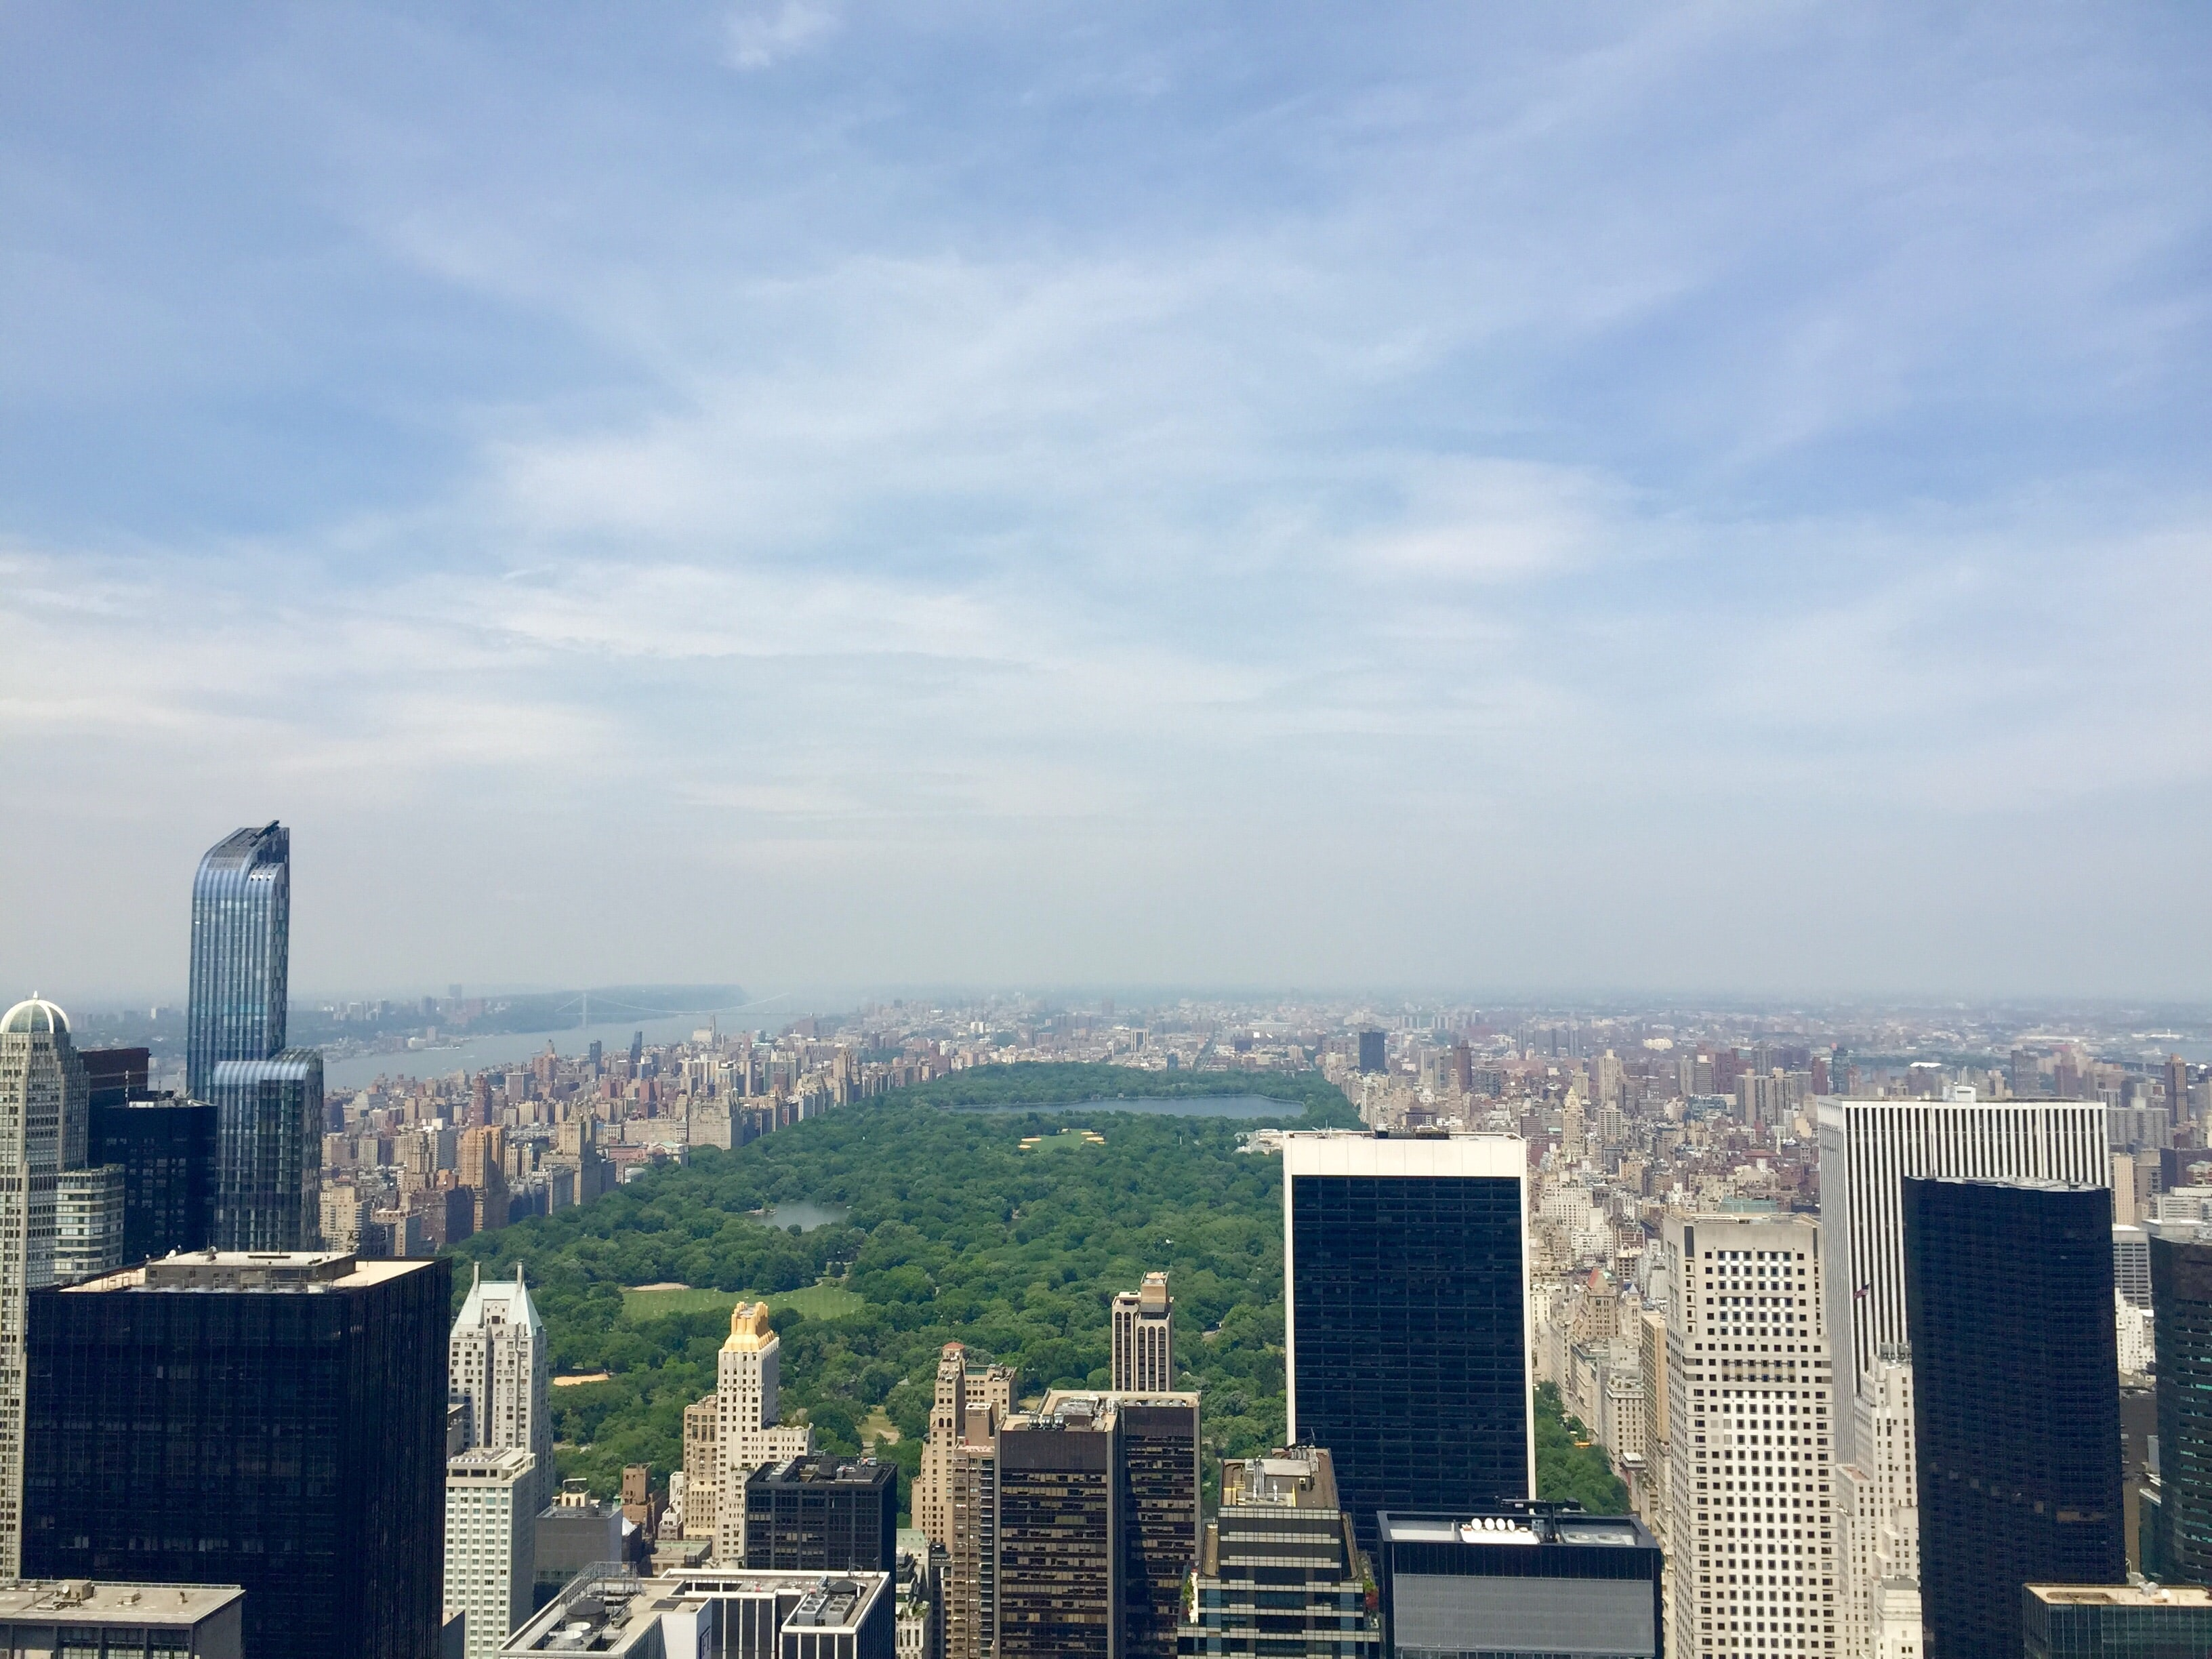 View from a skyscraper on New York City's Central Park